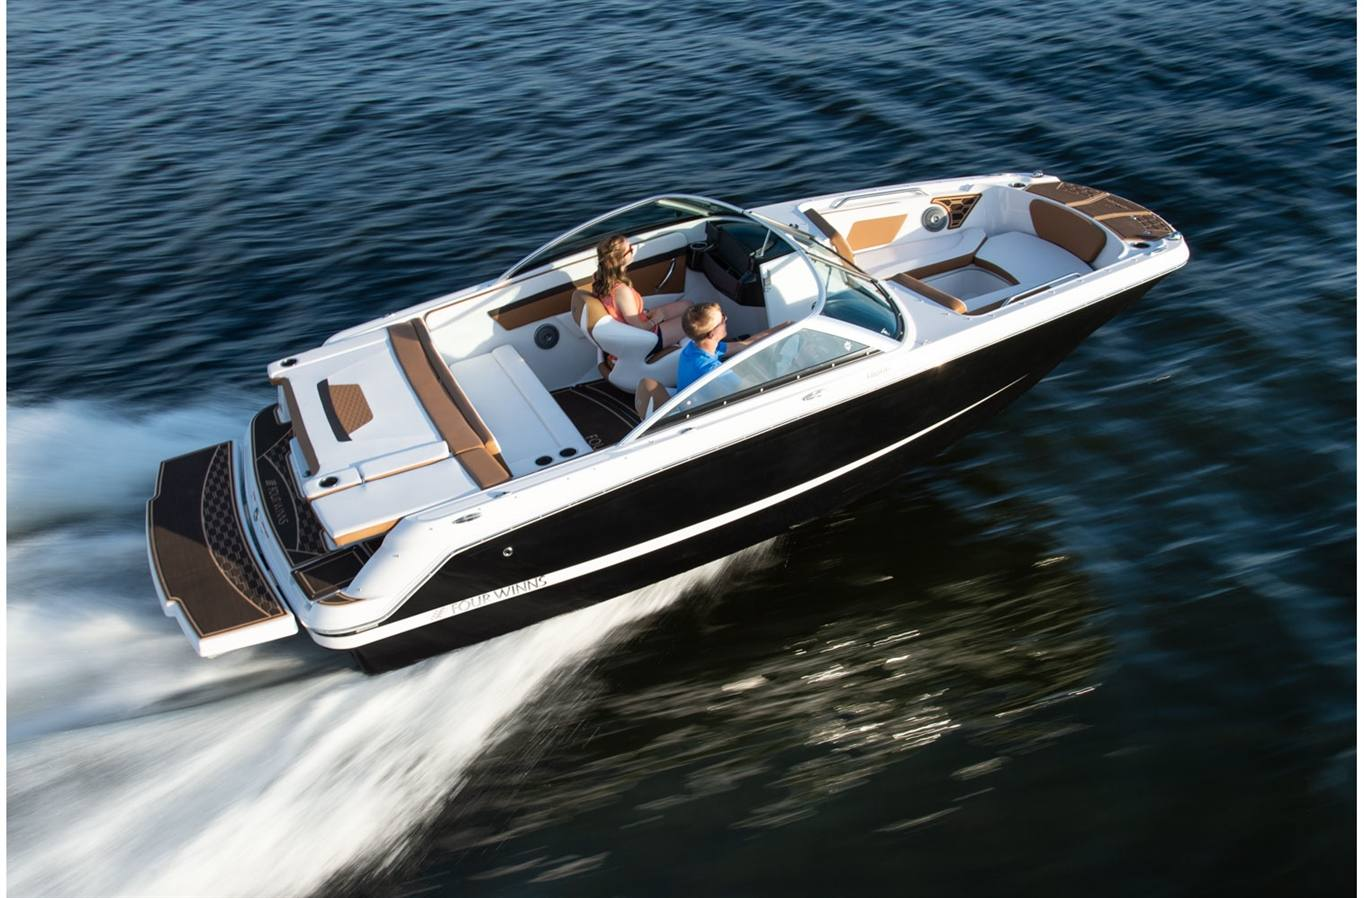 2019 Four Winns HD 180 for sale in Traverse City, MI | Action Water Volvo Penta Marine Engine Wiring Harnesses Freedom on